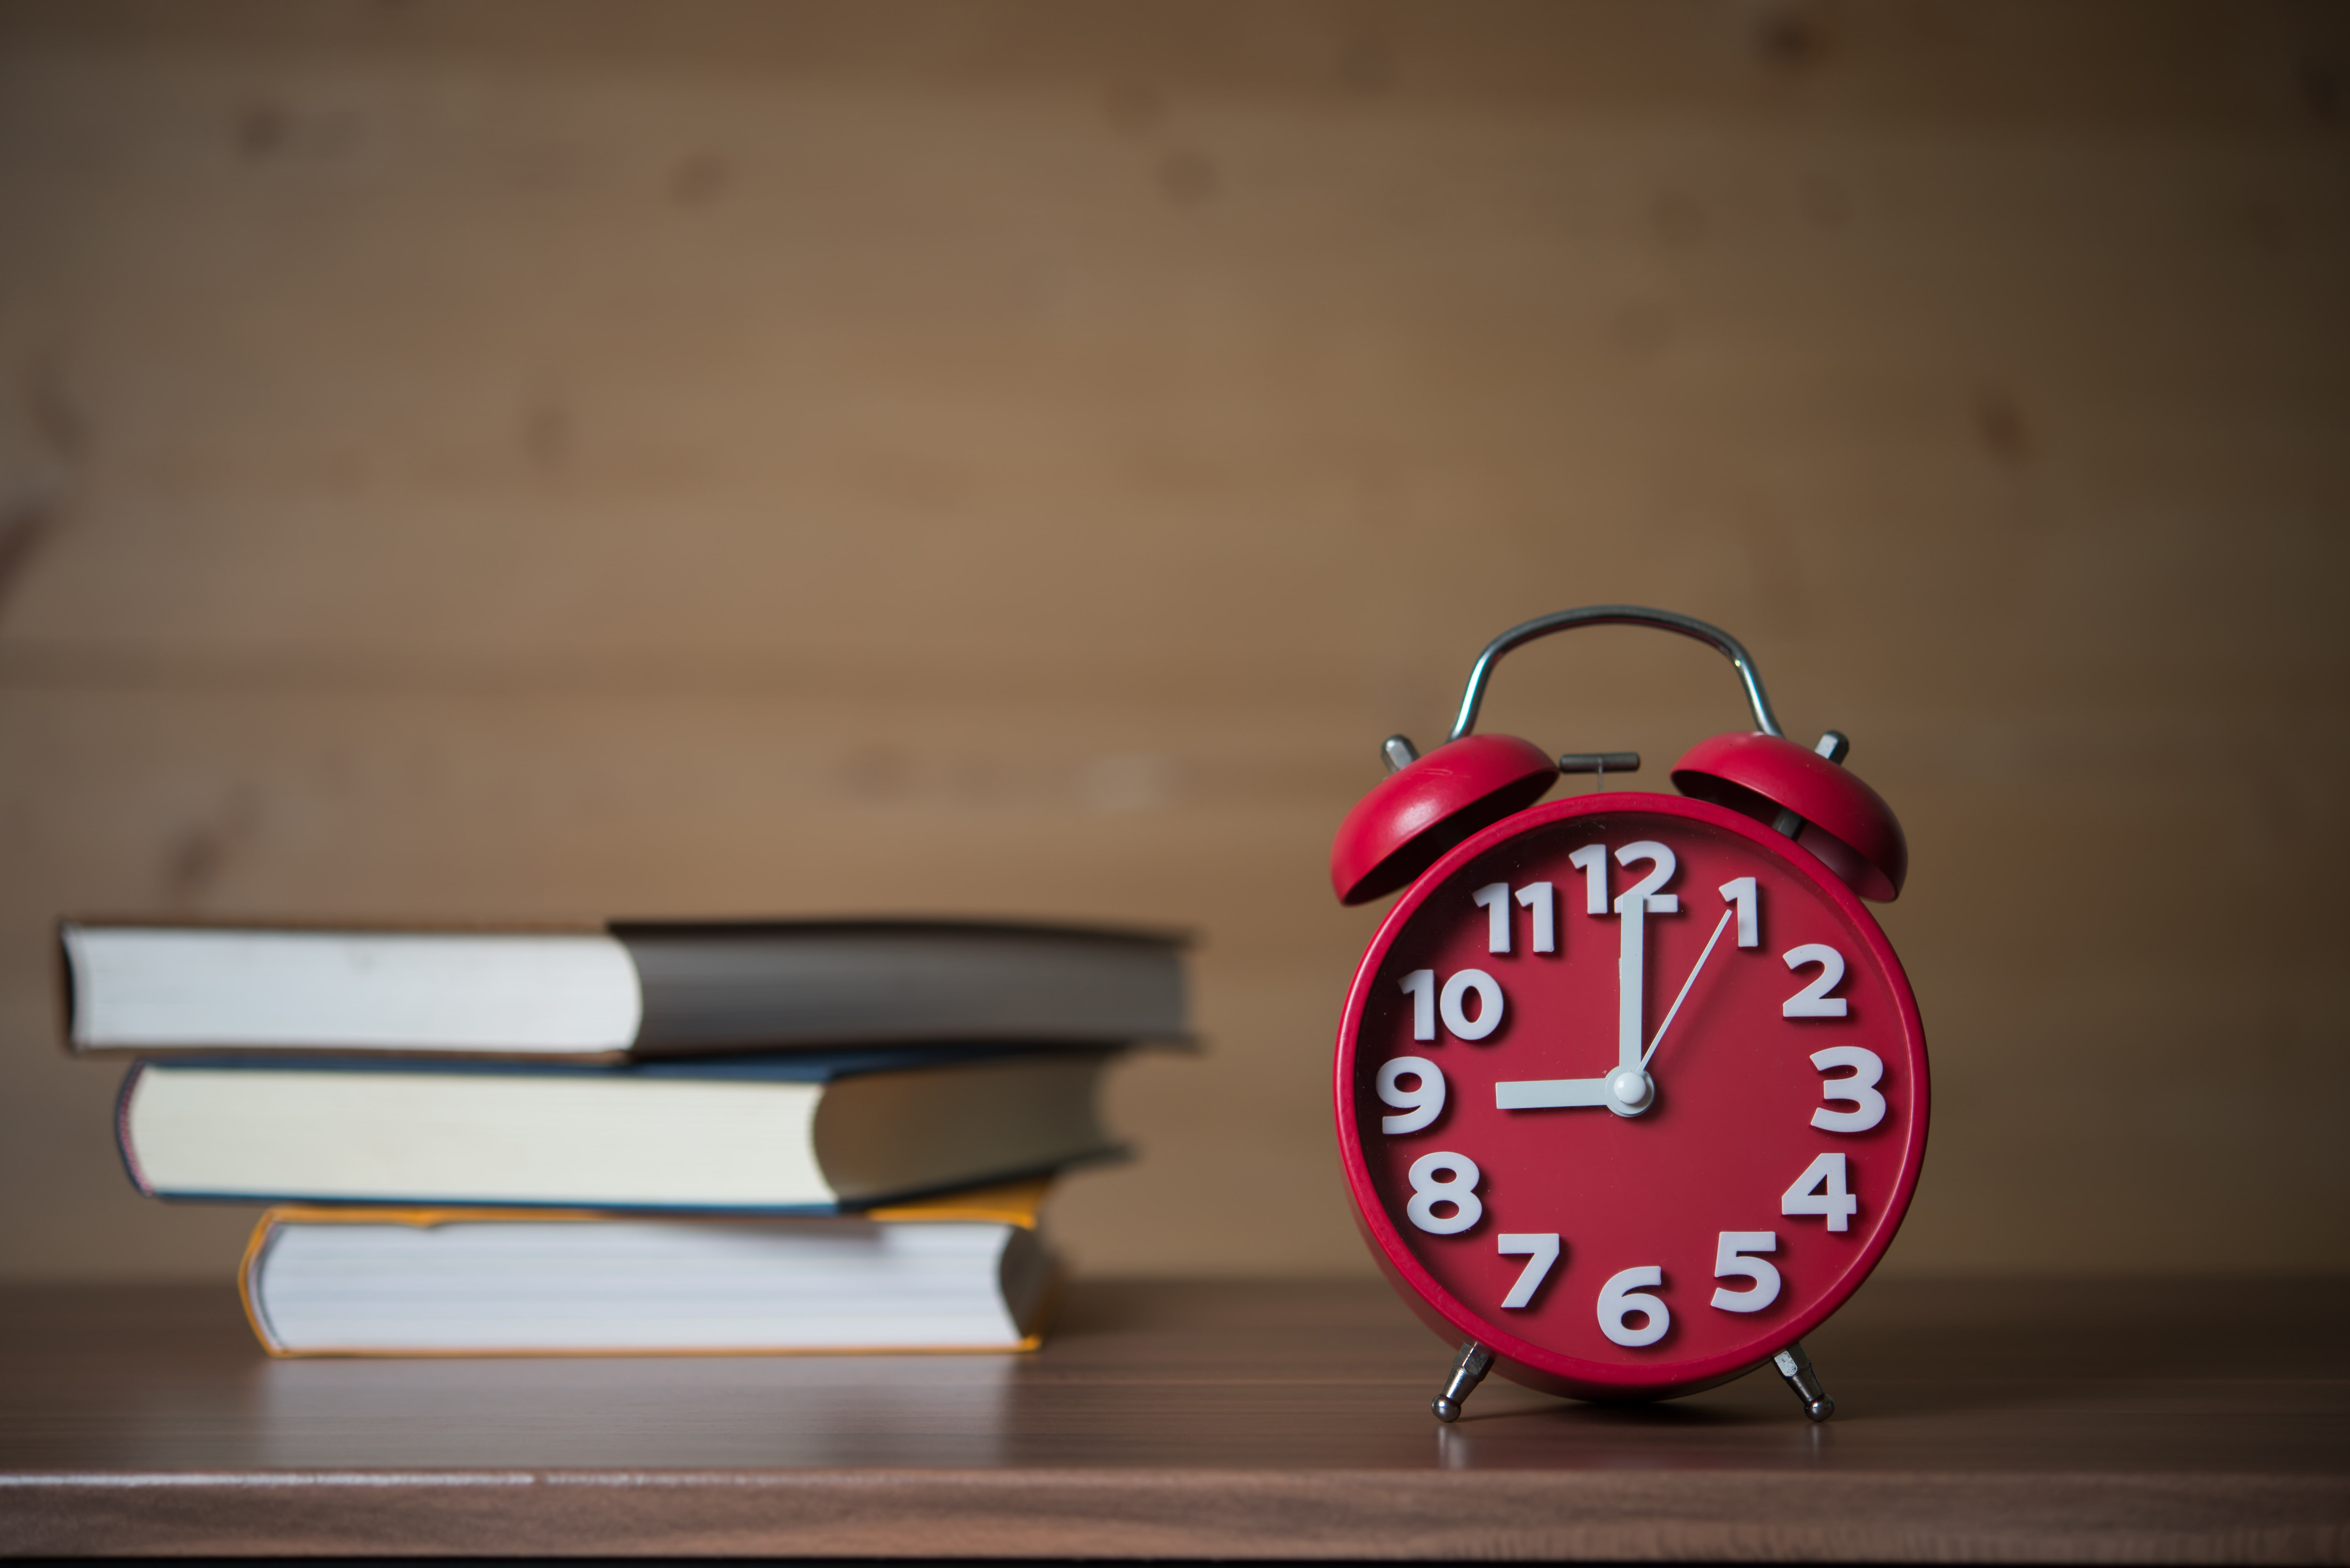 Use the time to prepare for the PMP exam